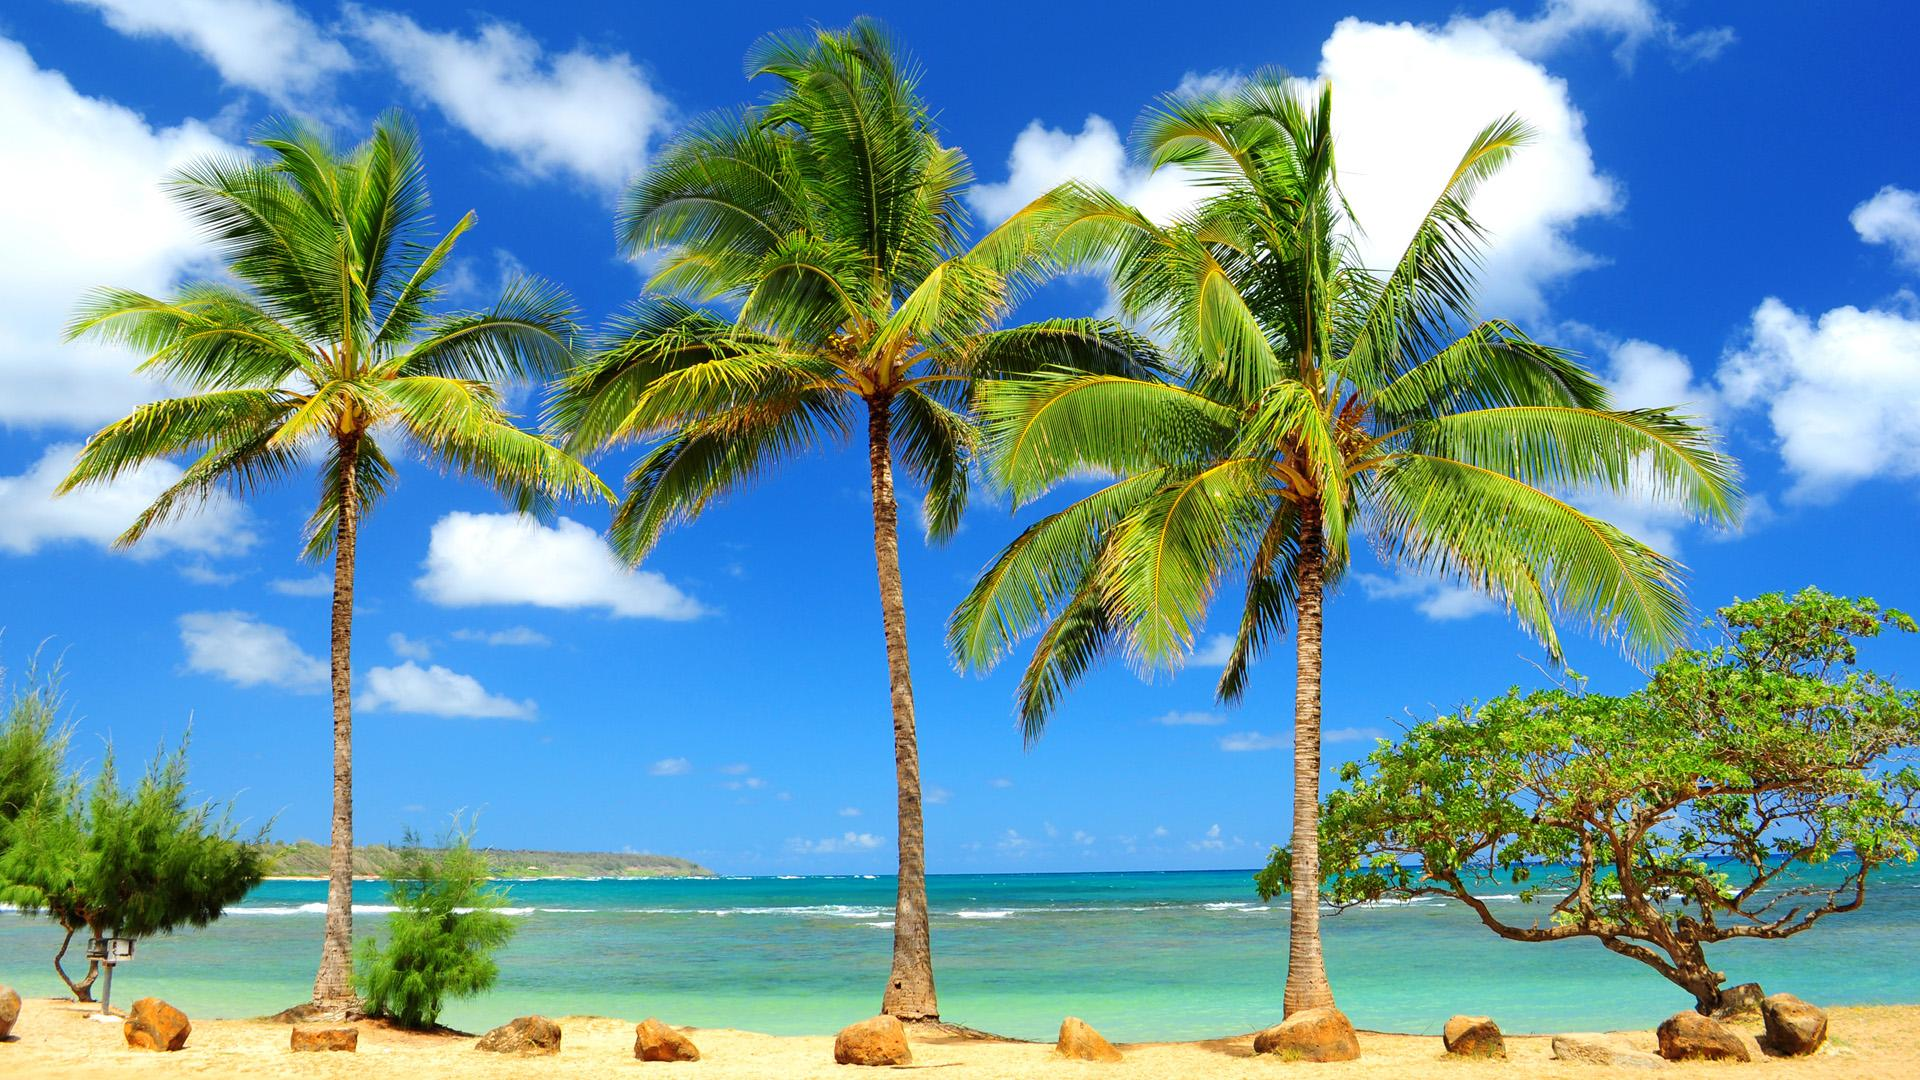 Caribbean Beach Wallpapers   My Wallz   Wallpapers to 1920x1080